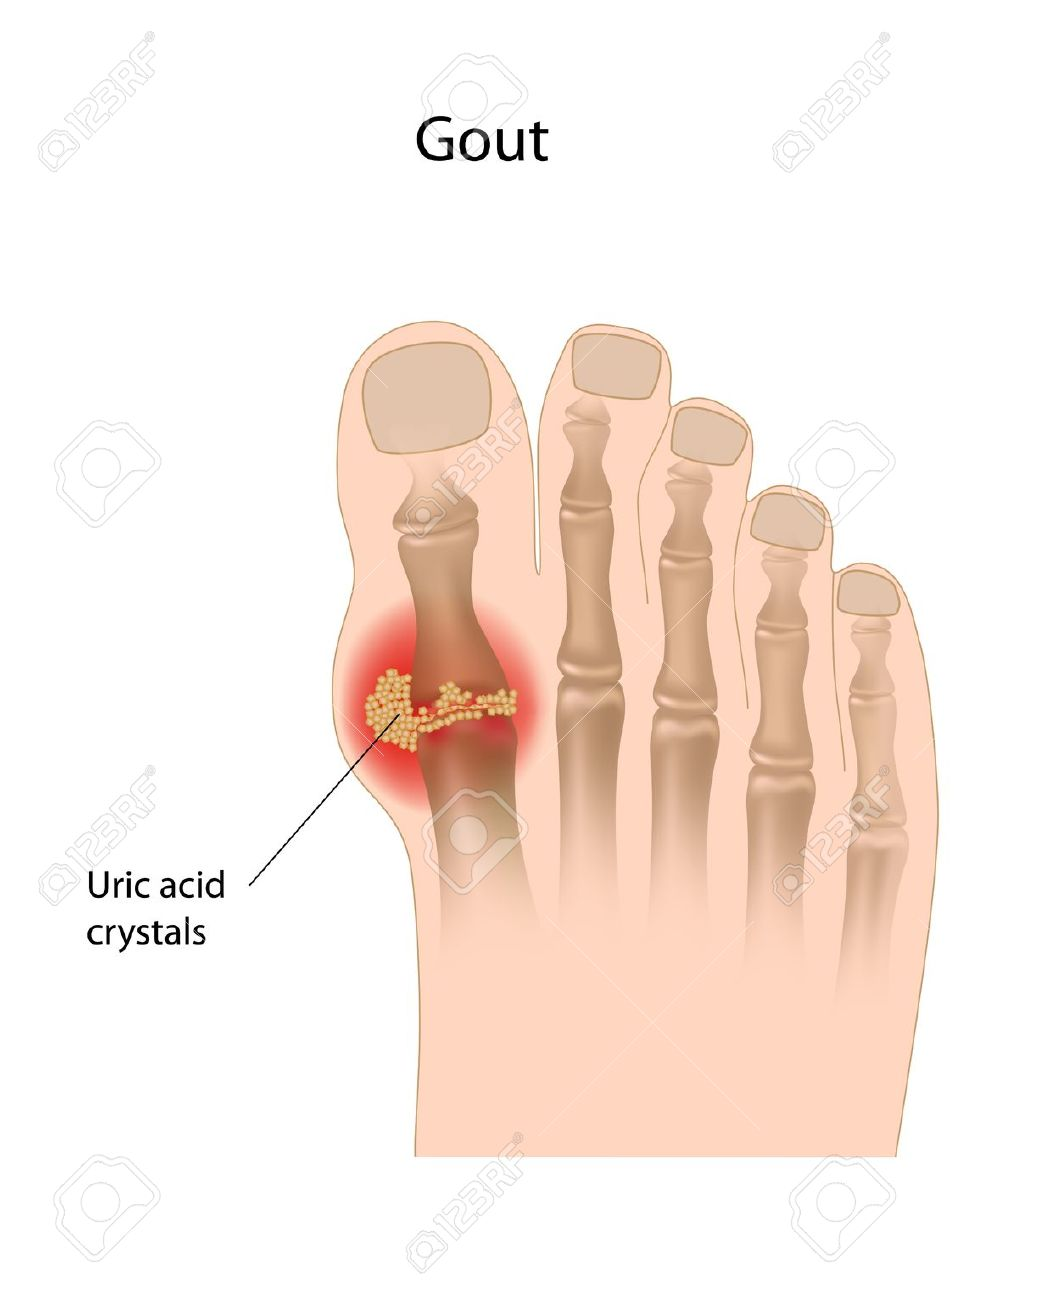 419 Gout Stock Illustrations, Cliparts And Royalty Free Gout Vectors.